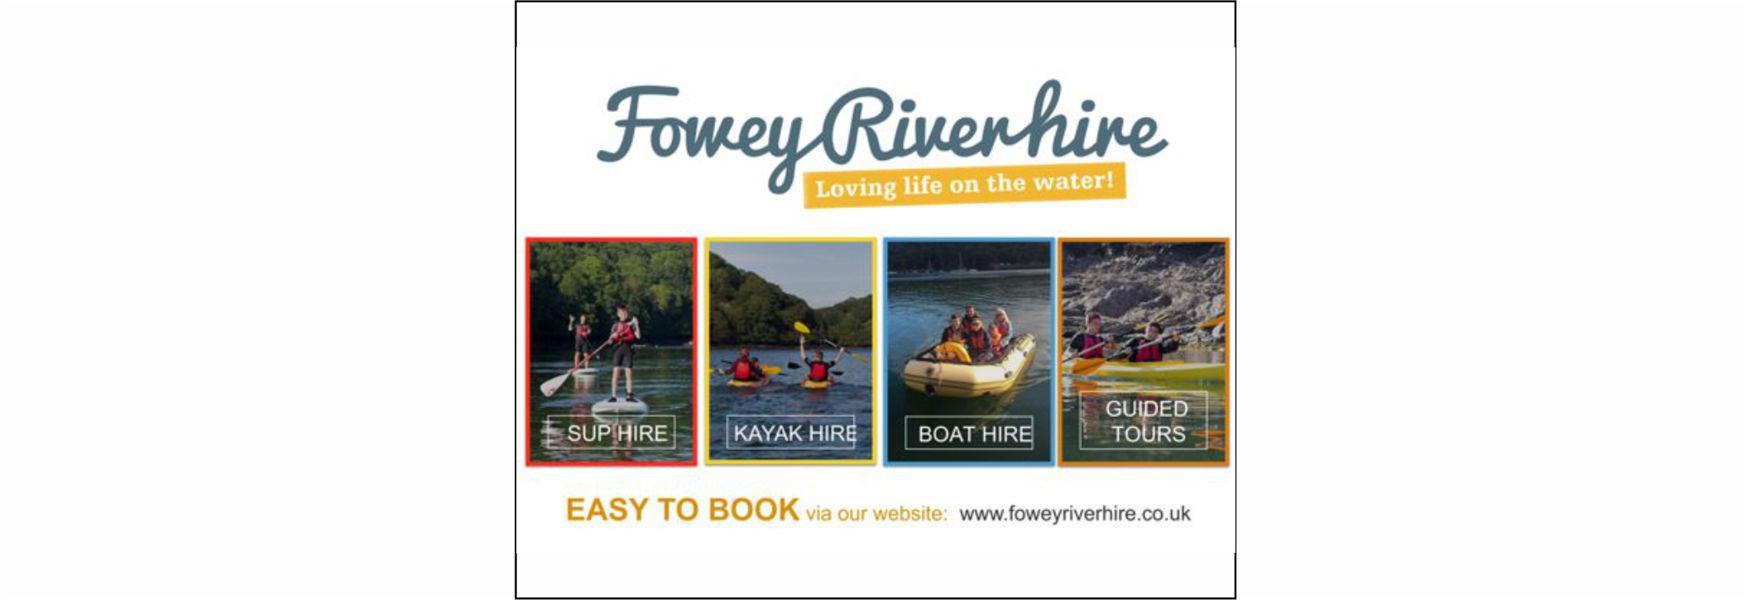 Fowey River Hire - Loving Life on the Water - Easy to book via our website - www.foweyriverhire.co.uk